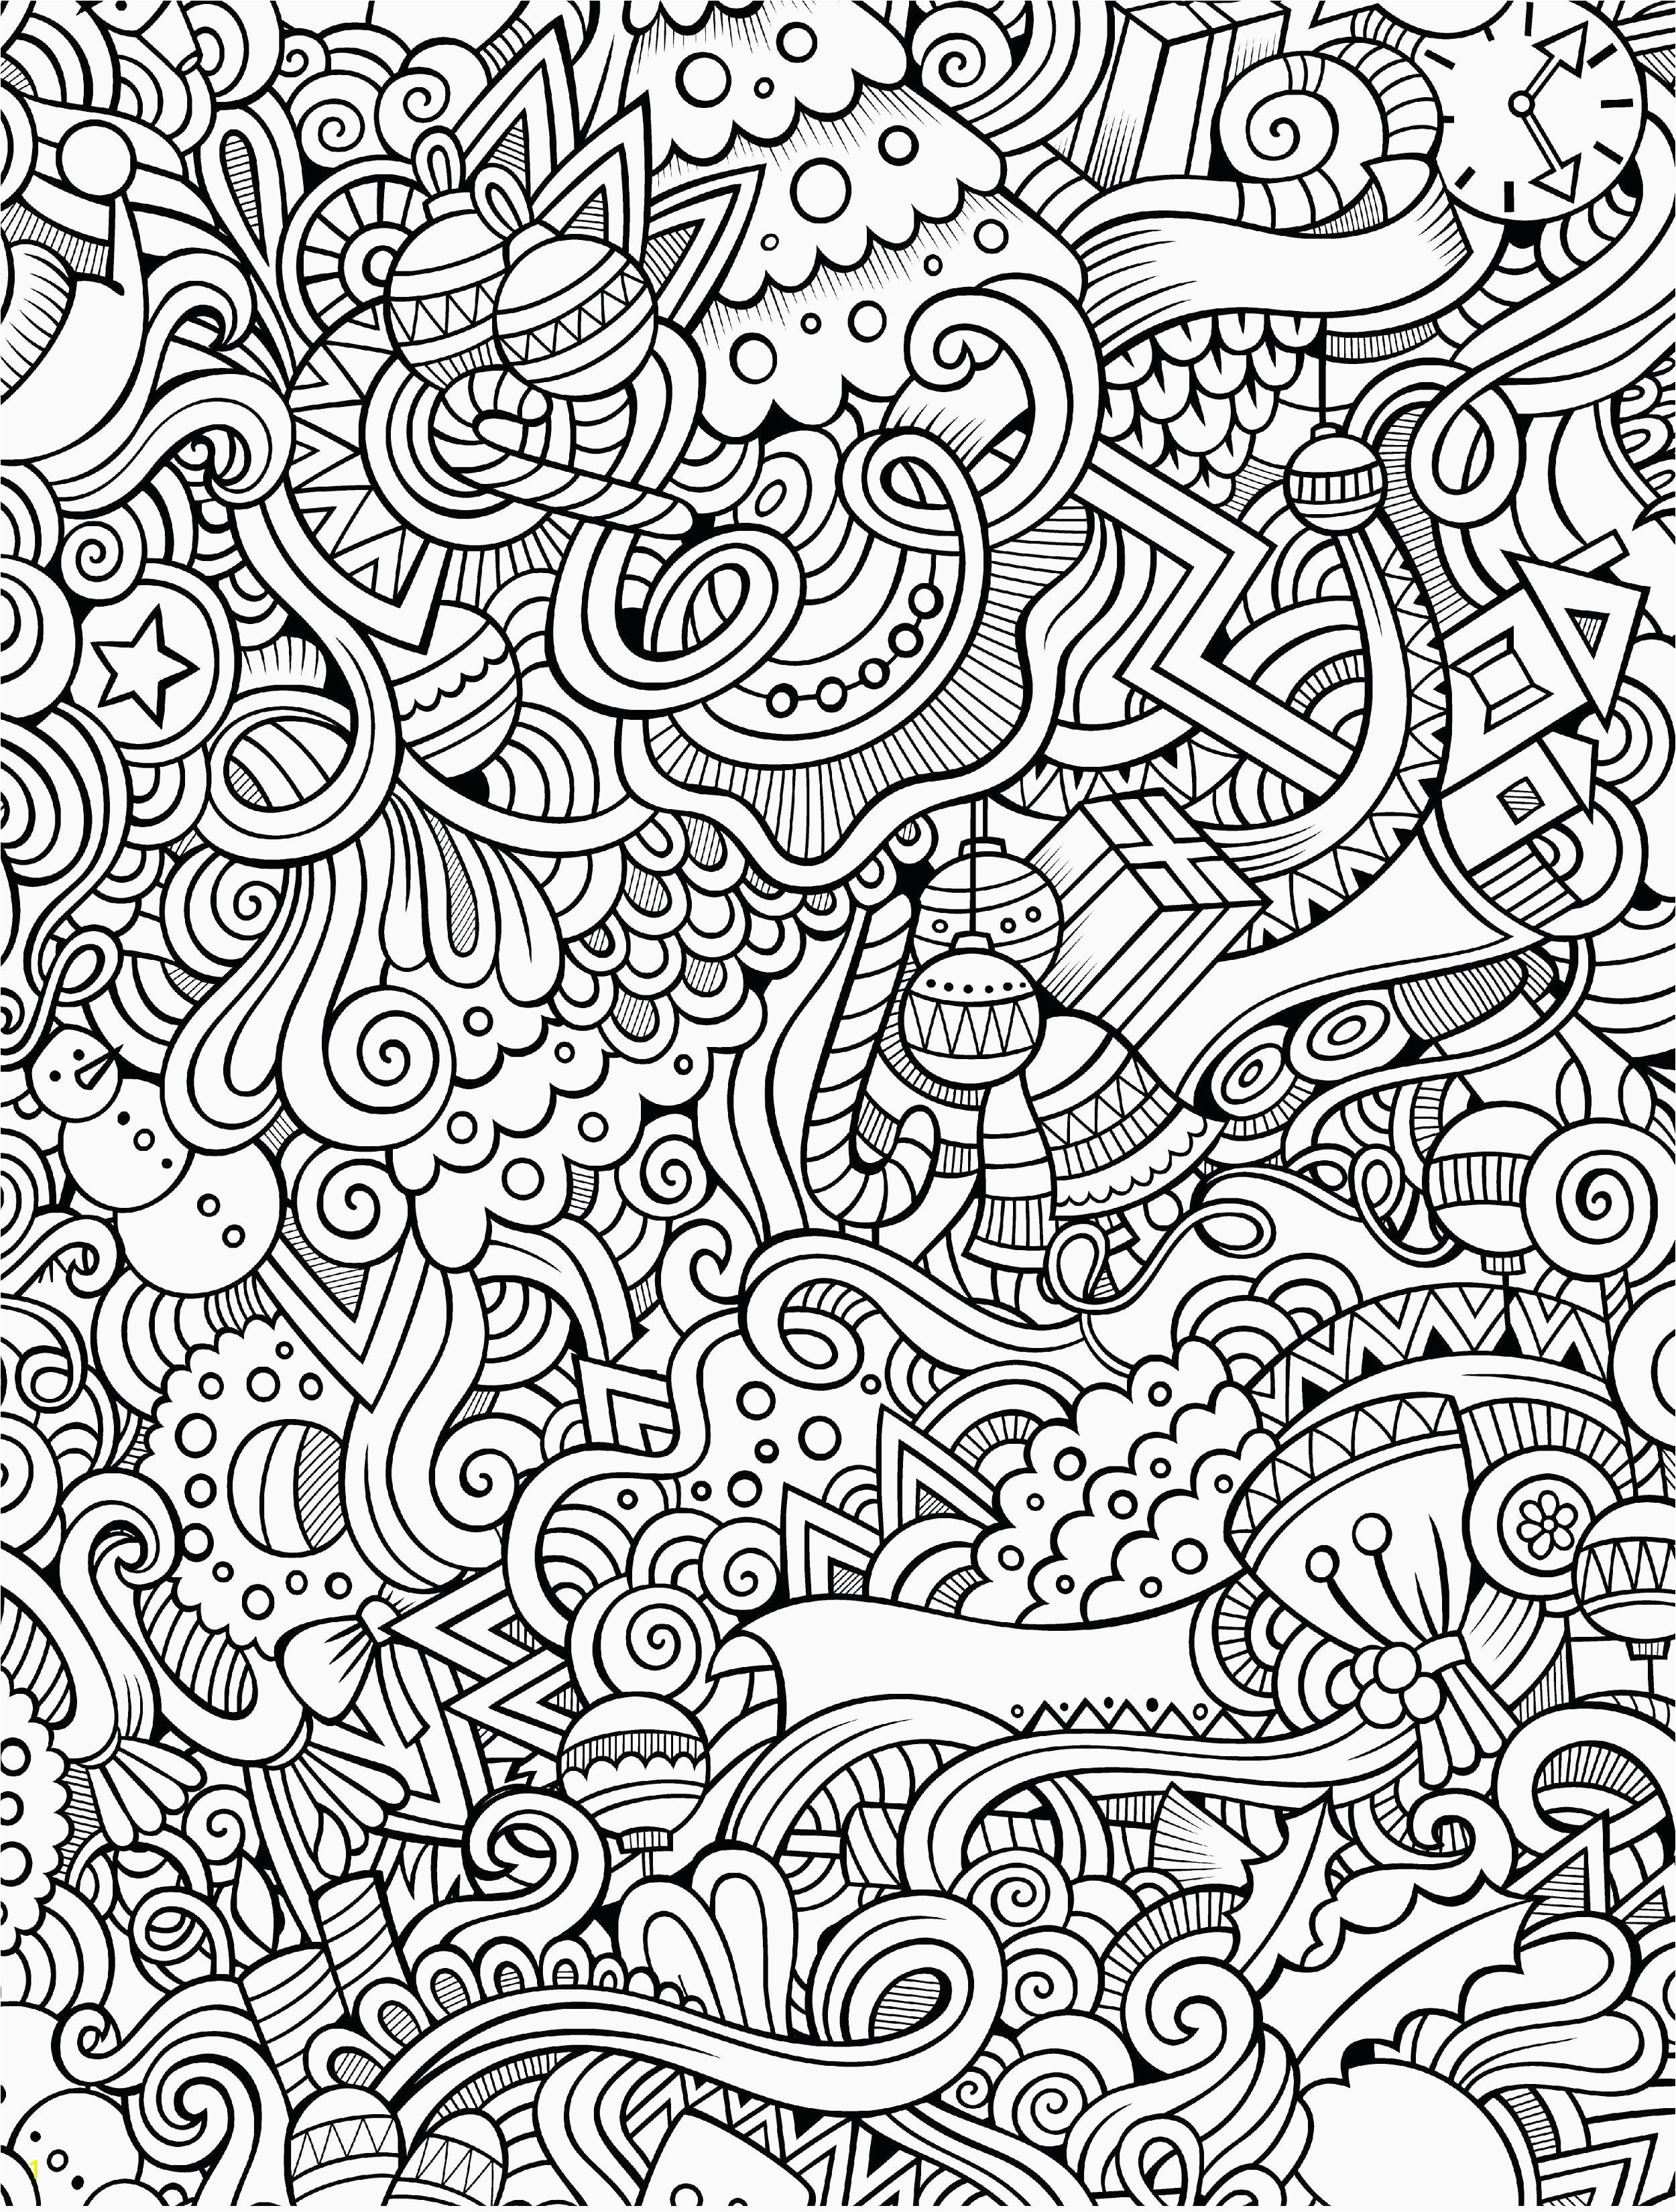 Abstract Printable Coloring Pages heathermarxgallery